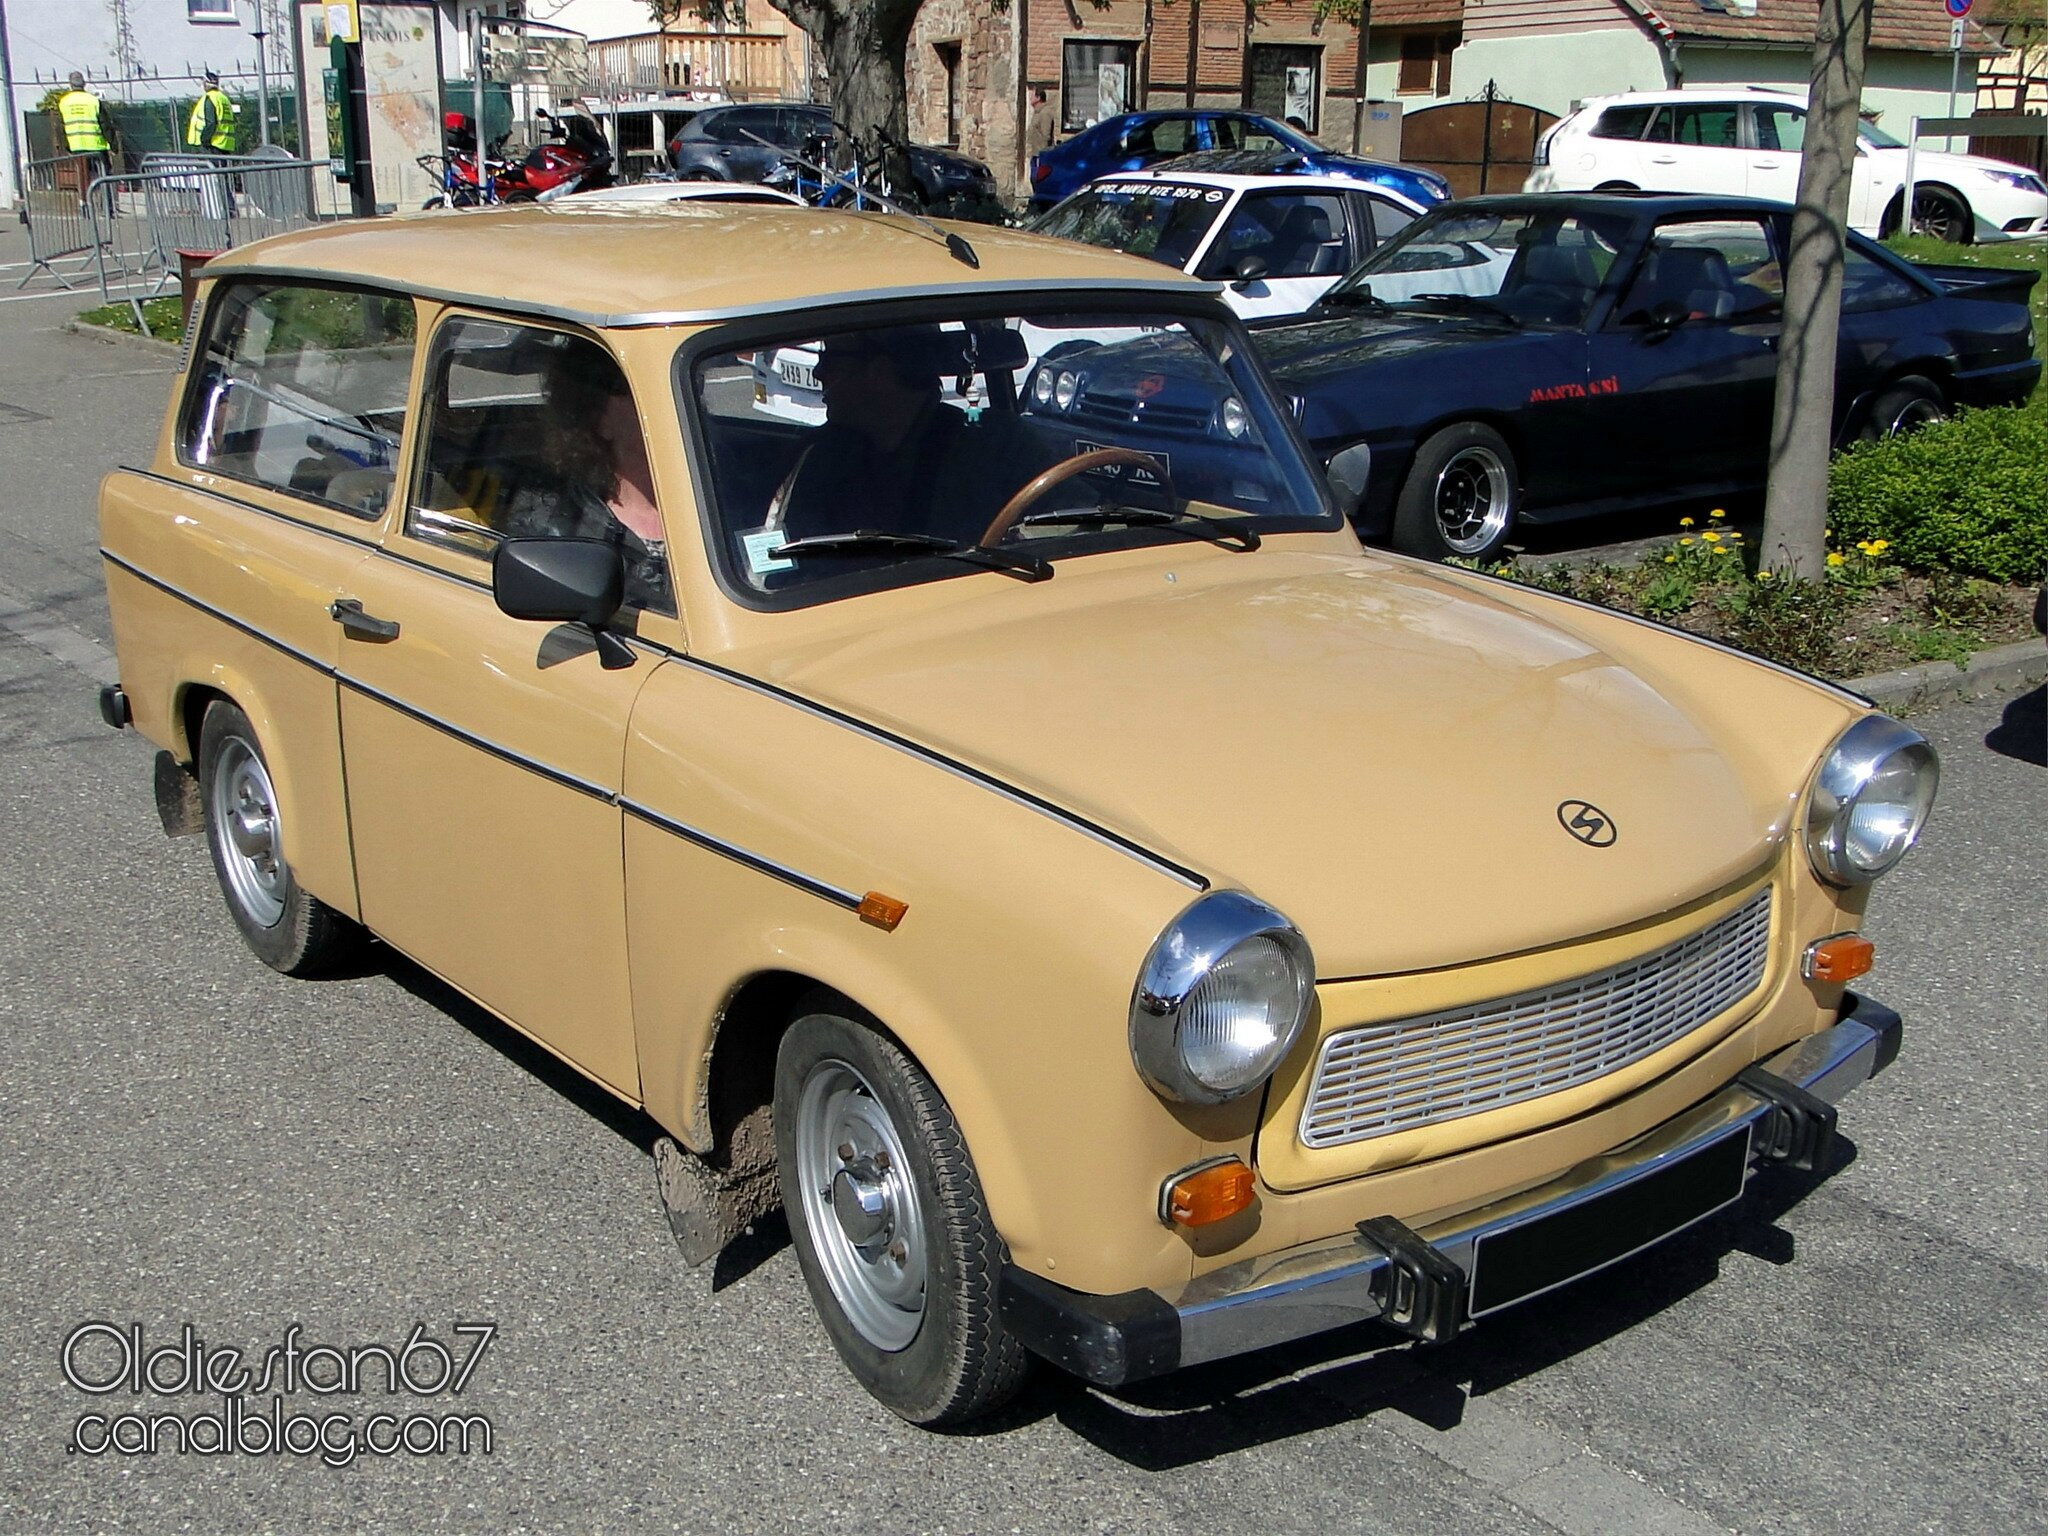 trabant 601 s universal 1979 1989 oldiesfan67 mon blog auto. Black Bedroom Furniture Sets. Home Design Ideas